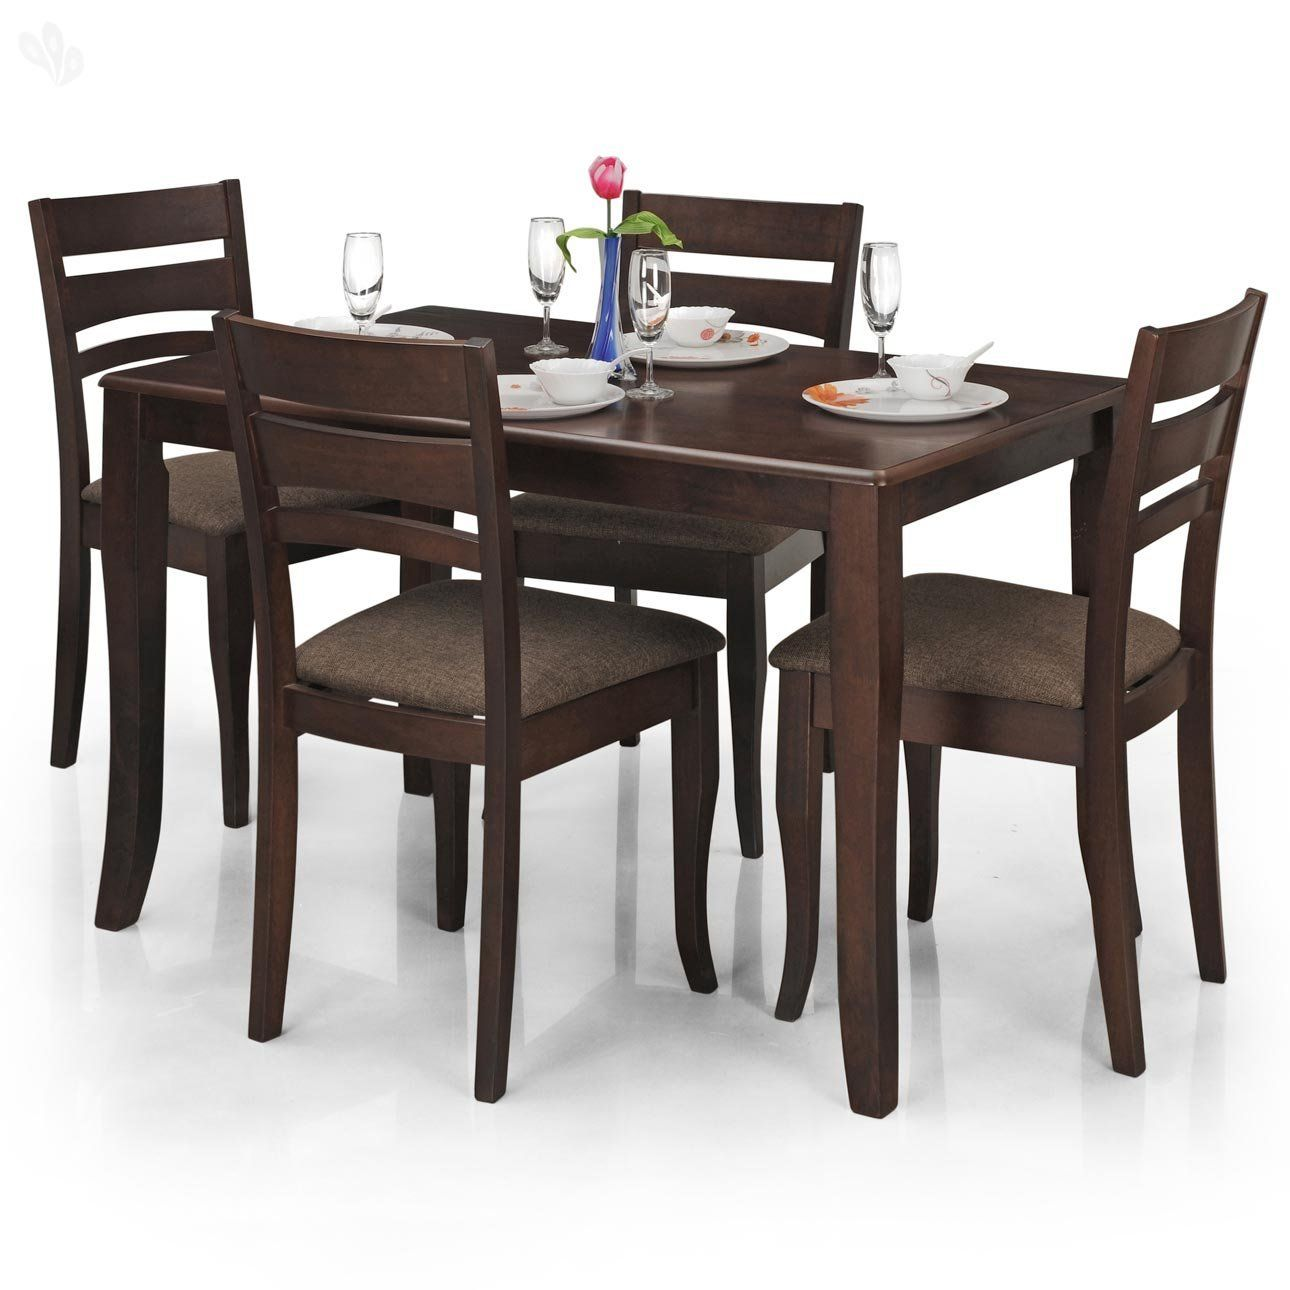 Dining Table Set royal oak victor four seater dining table set (walnut): amazon.in